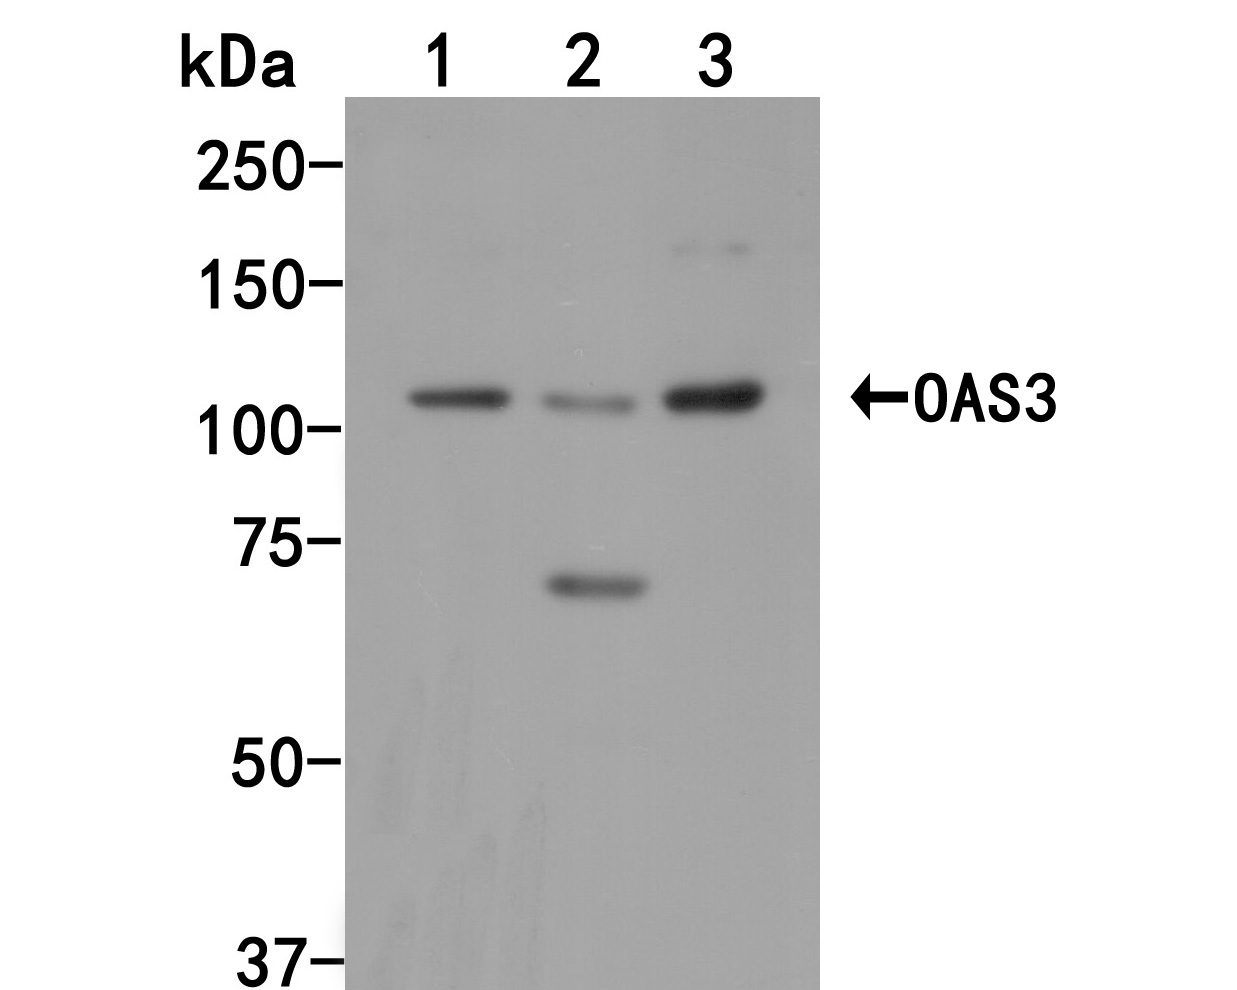 Western blot analysis of OAS3 on different lysates. Proteins were transferred to a PVDF membrane and blocked with 5% BSA in PBS for 1 hour at room temperature. The primary antibody (HA500039, 1/1,000) was used in 5% BSA at room temperature for 2 hours. Goat Anti-Rabbit IgG - HRP Secondary Antibody (HA1001) at 1:5,000 dilution was used for 1 hour at room temperature.<br /> Positive control: <br /> Lane 1: A549 cell lysate<br /> Lane 2: Human placental tissue lysate<br /> Lane 3: A431 cell lysate